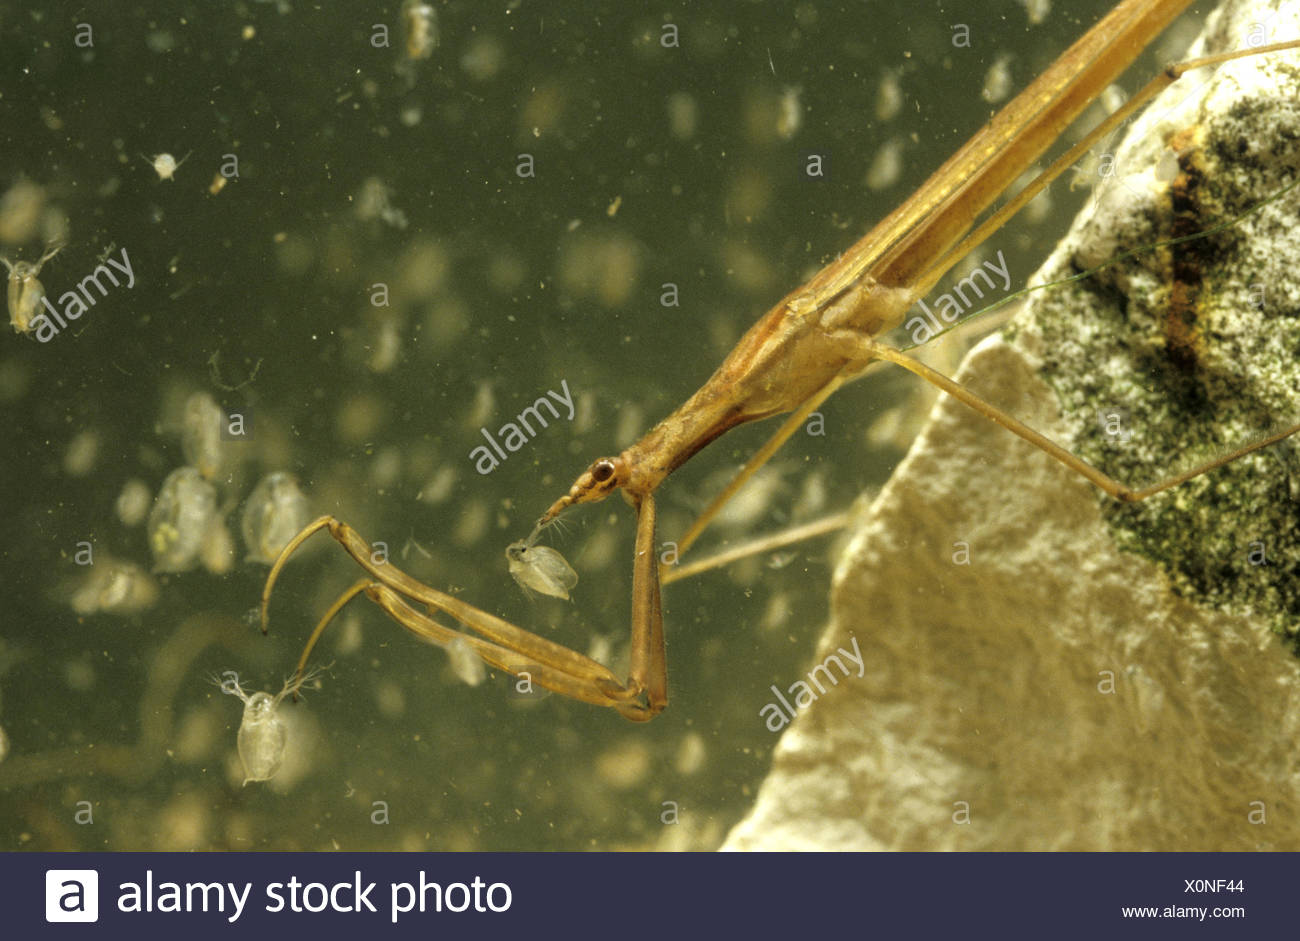 Water Stick Insect - Ranatra linearis - Stock Image